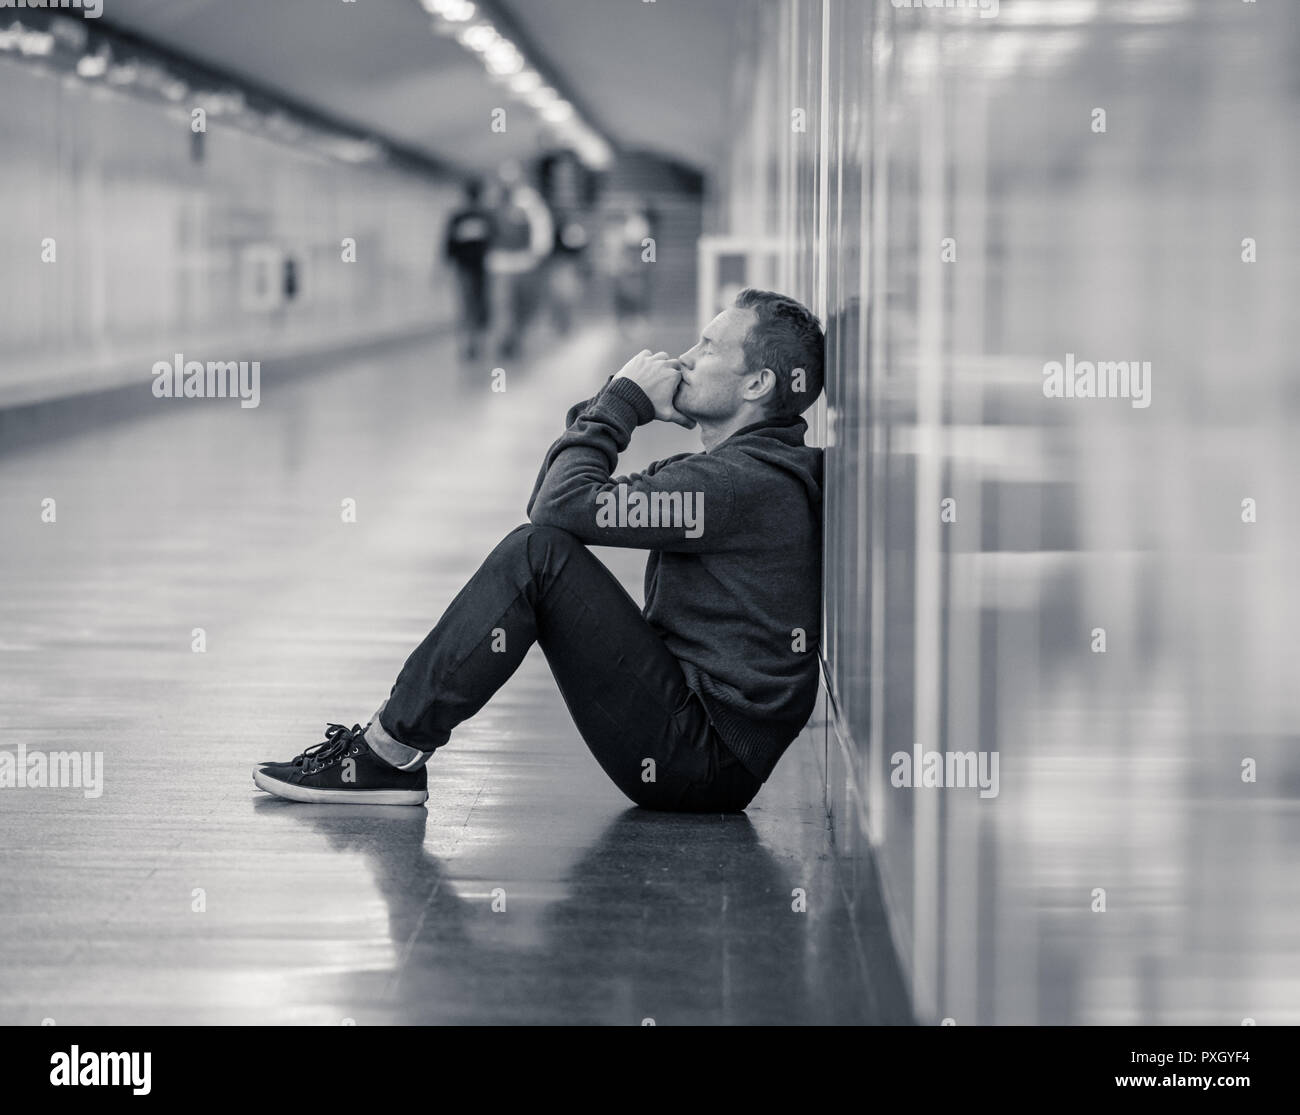 Miserable jobless young man crying Drug addict Homeless in depression stress sitting on ground street subway tunnel looking desperate leaning on wall  - Stock Image